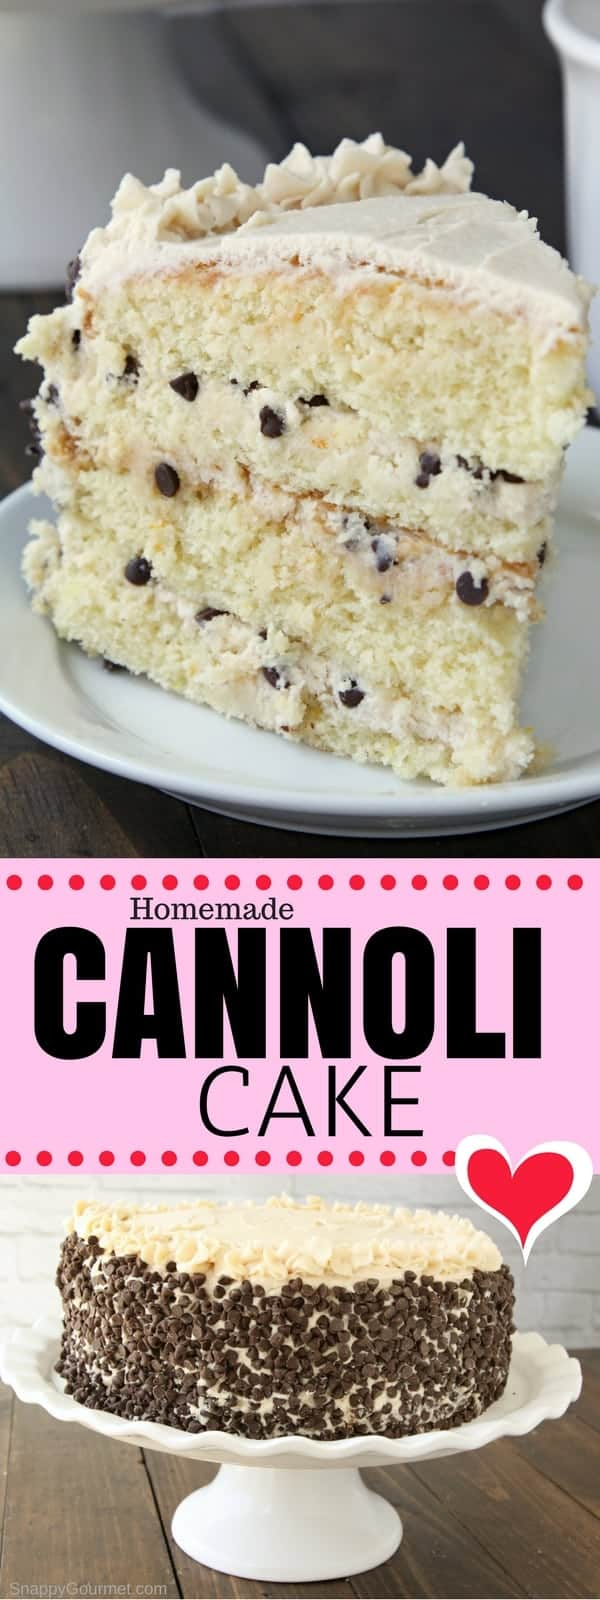 Cannoli Cake Recipe - the best homemade cannoli cake!